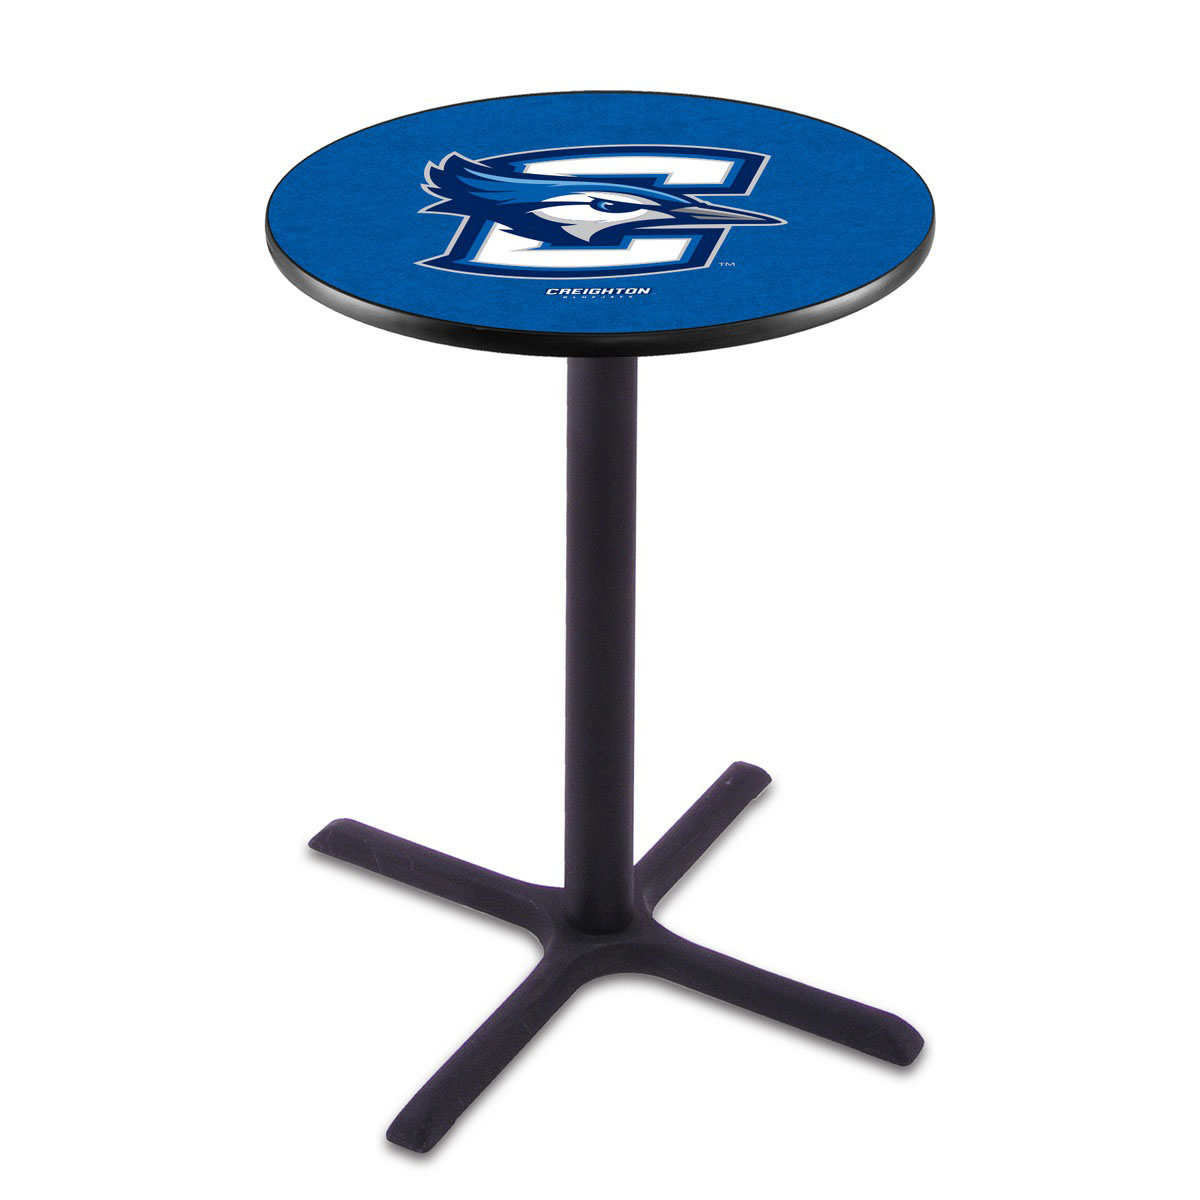 Stunning Creighton Wrinkle Pub Table Product Photo